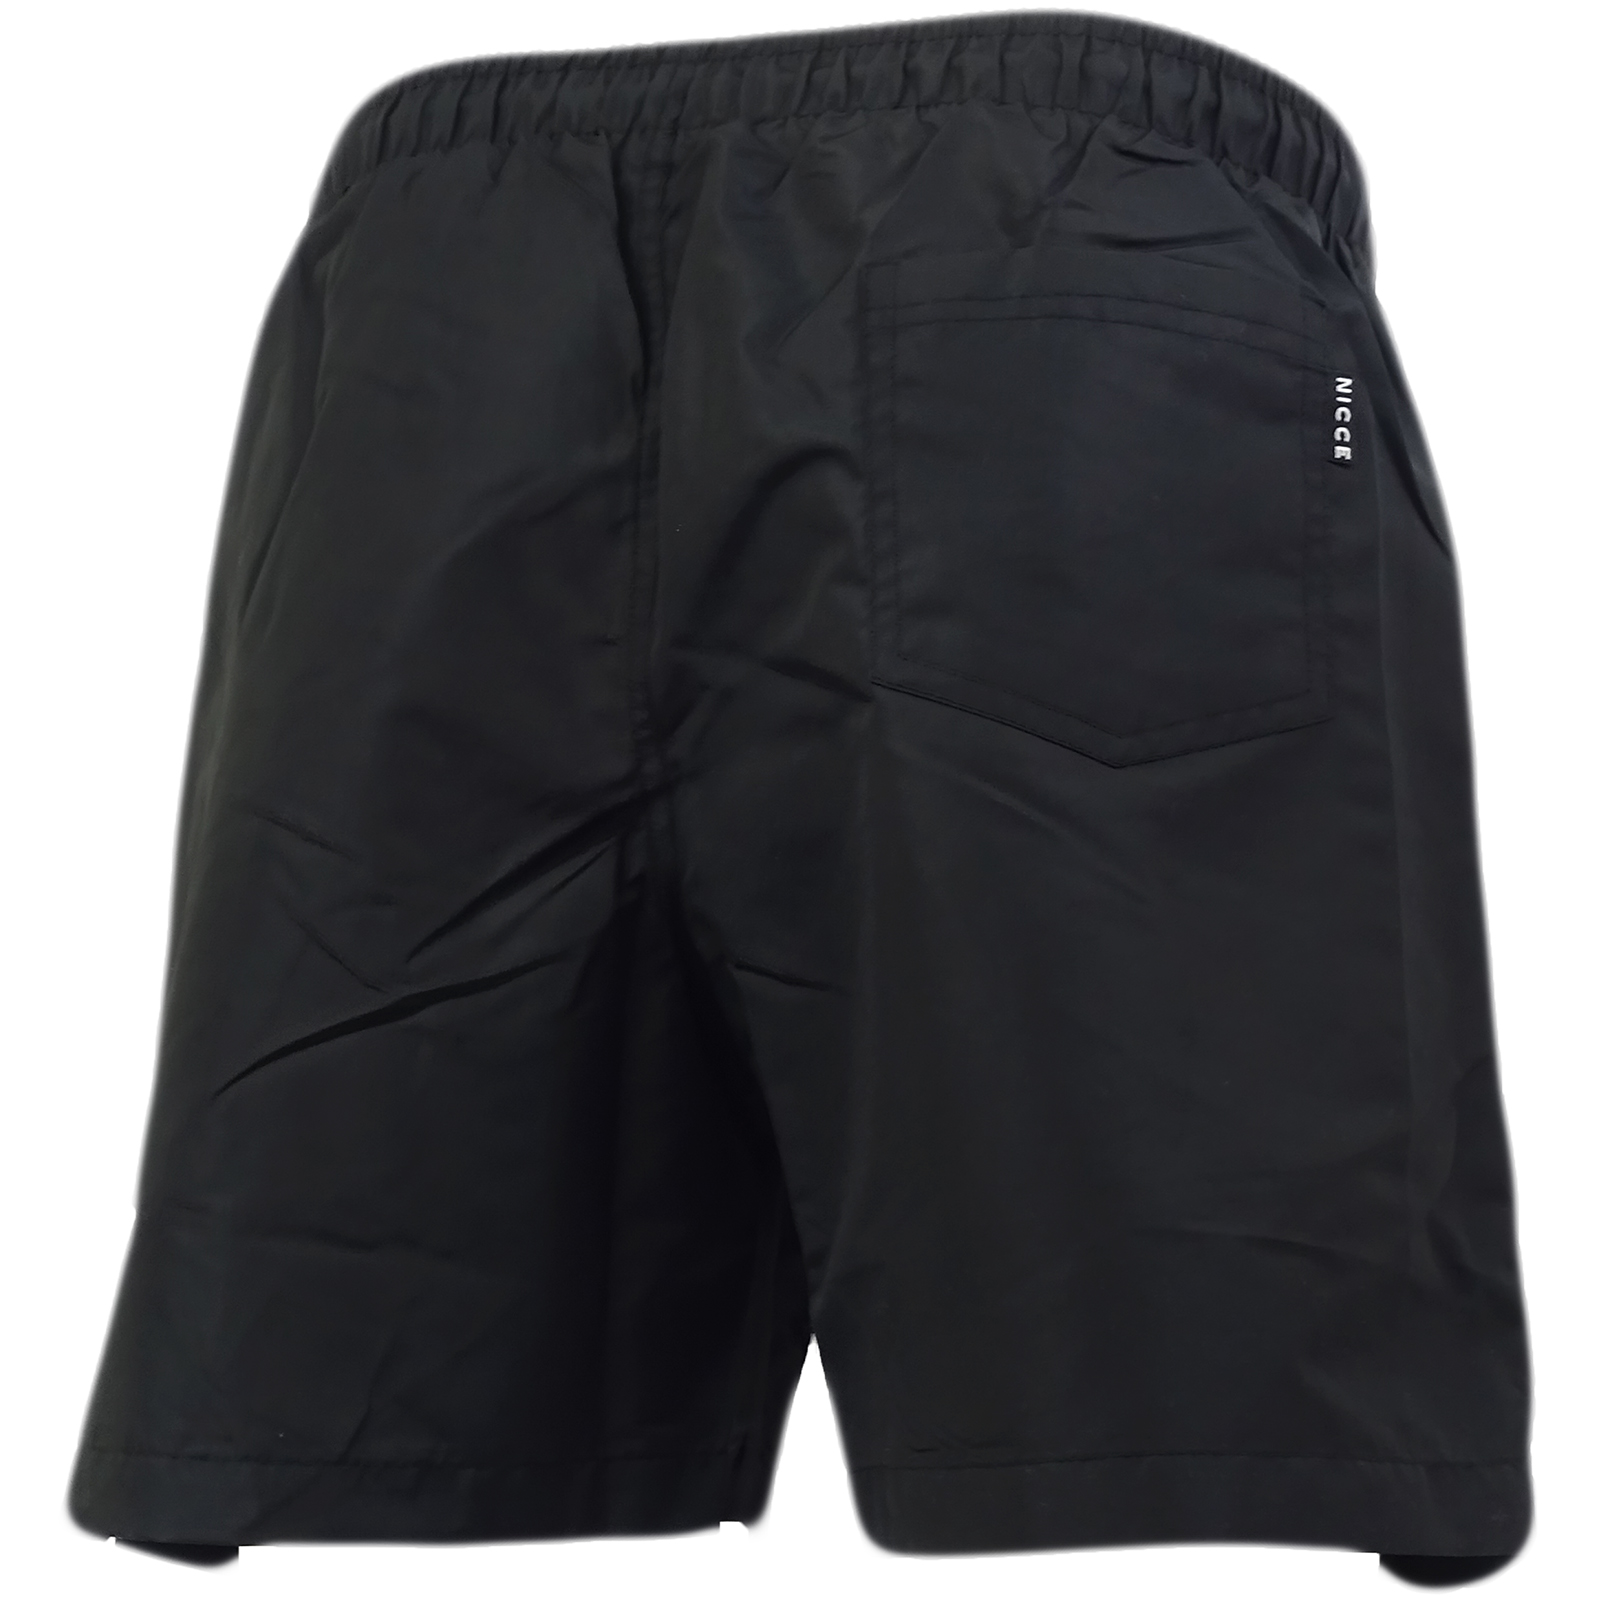 Mens Nicce Shortss swm01 Shortss Mens By rqpwranB7